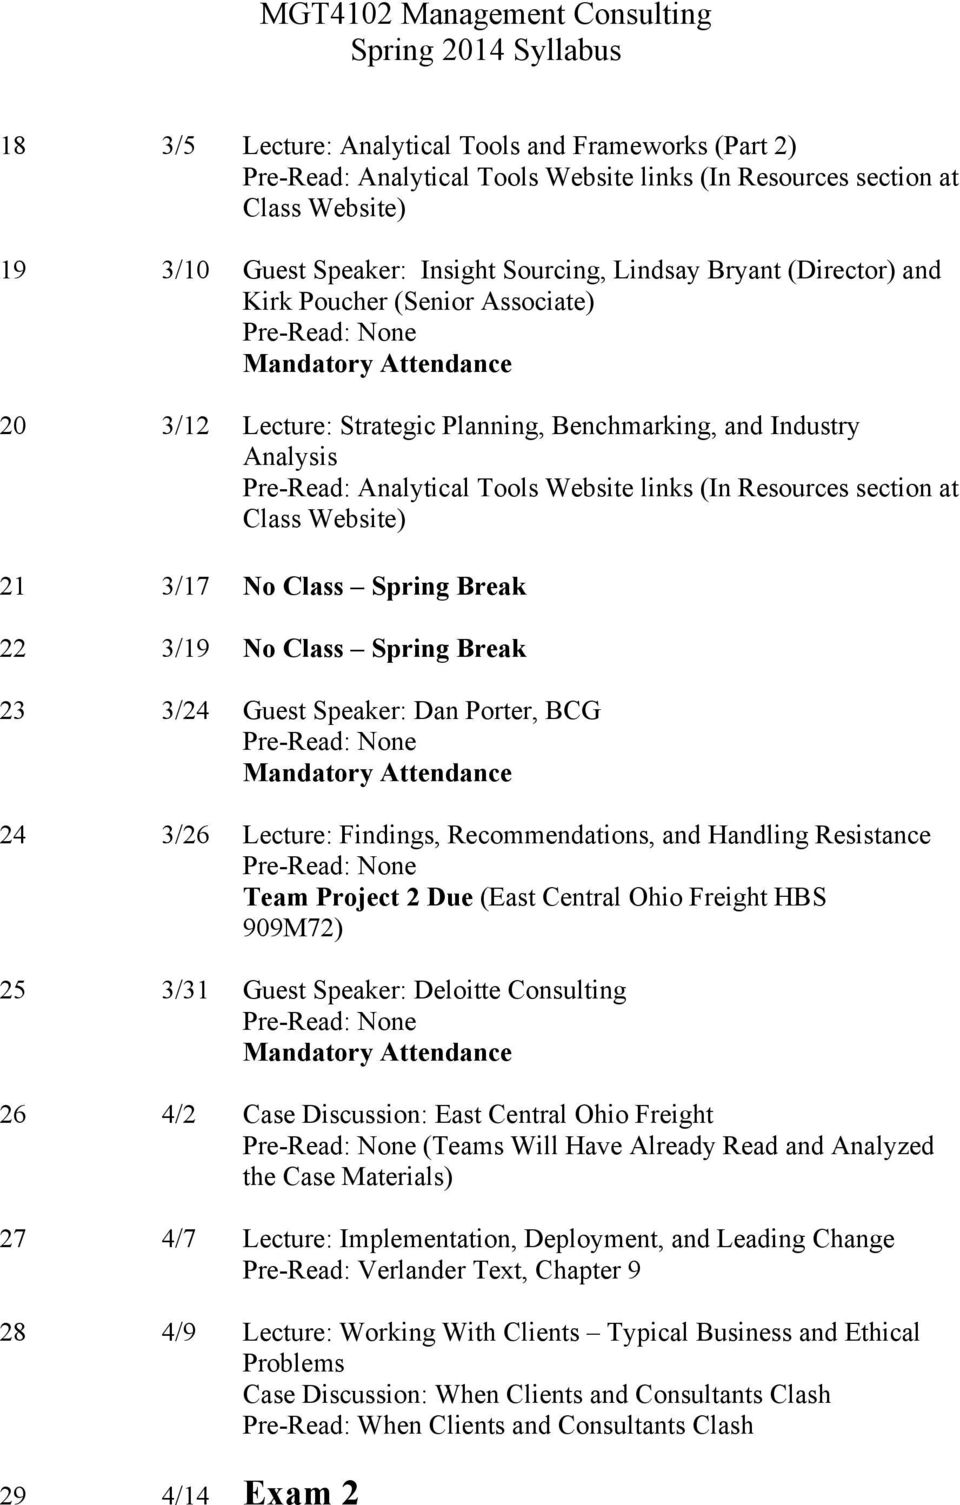 Website) 21 3/17 No Class Spring Break 22 3/19 No Class Spring Break 23 3/24 Guest Speaker: Dan Porter, BCG 24 3/26 Lecture: Findings, Recommendations, and Handling Resistance Team Project 2 Due